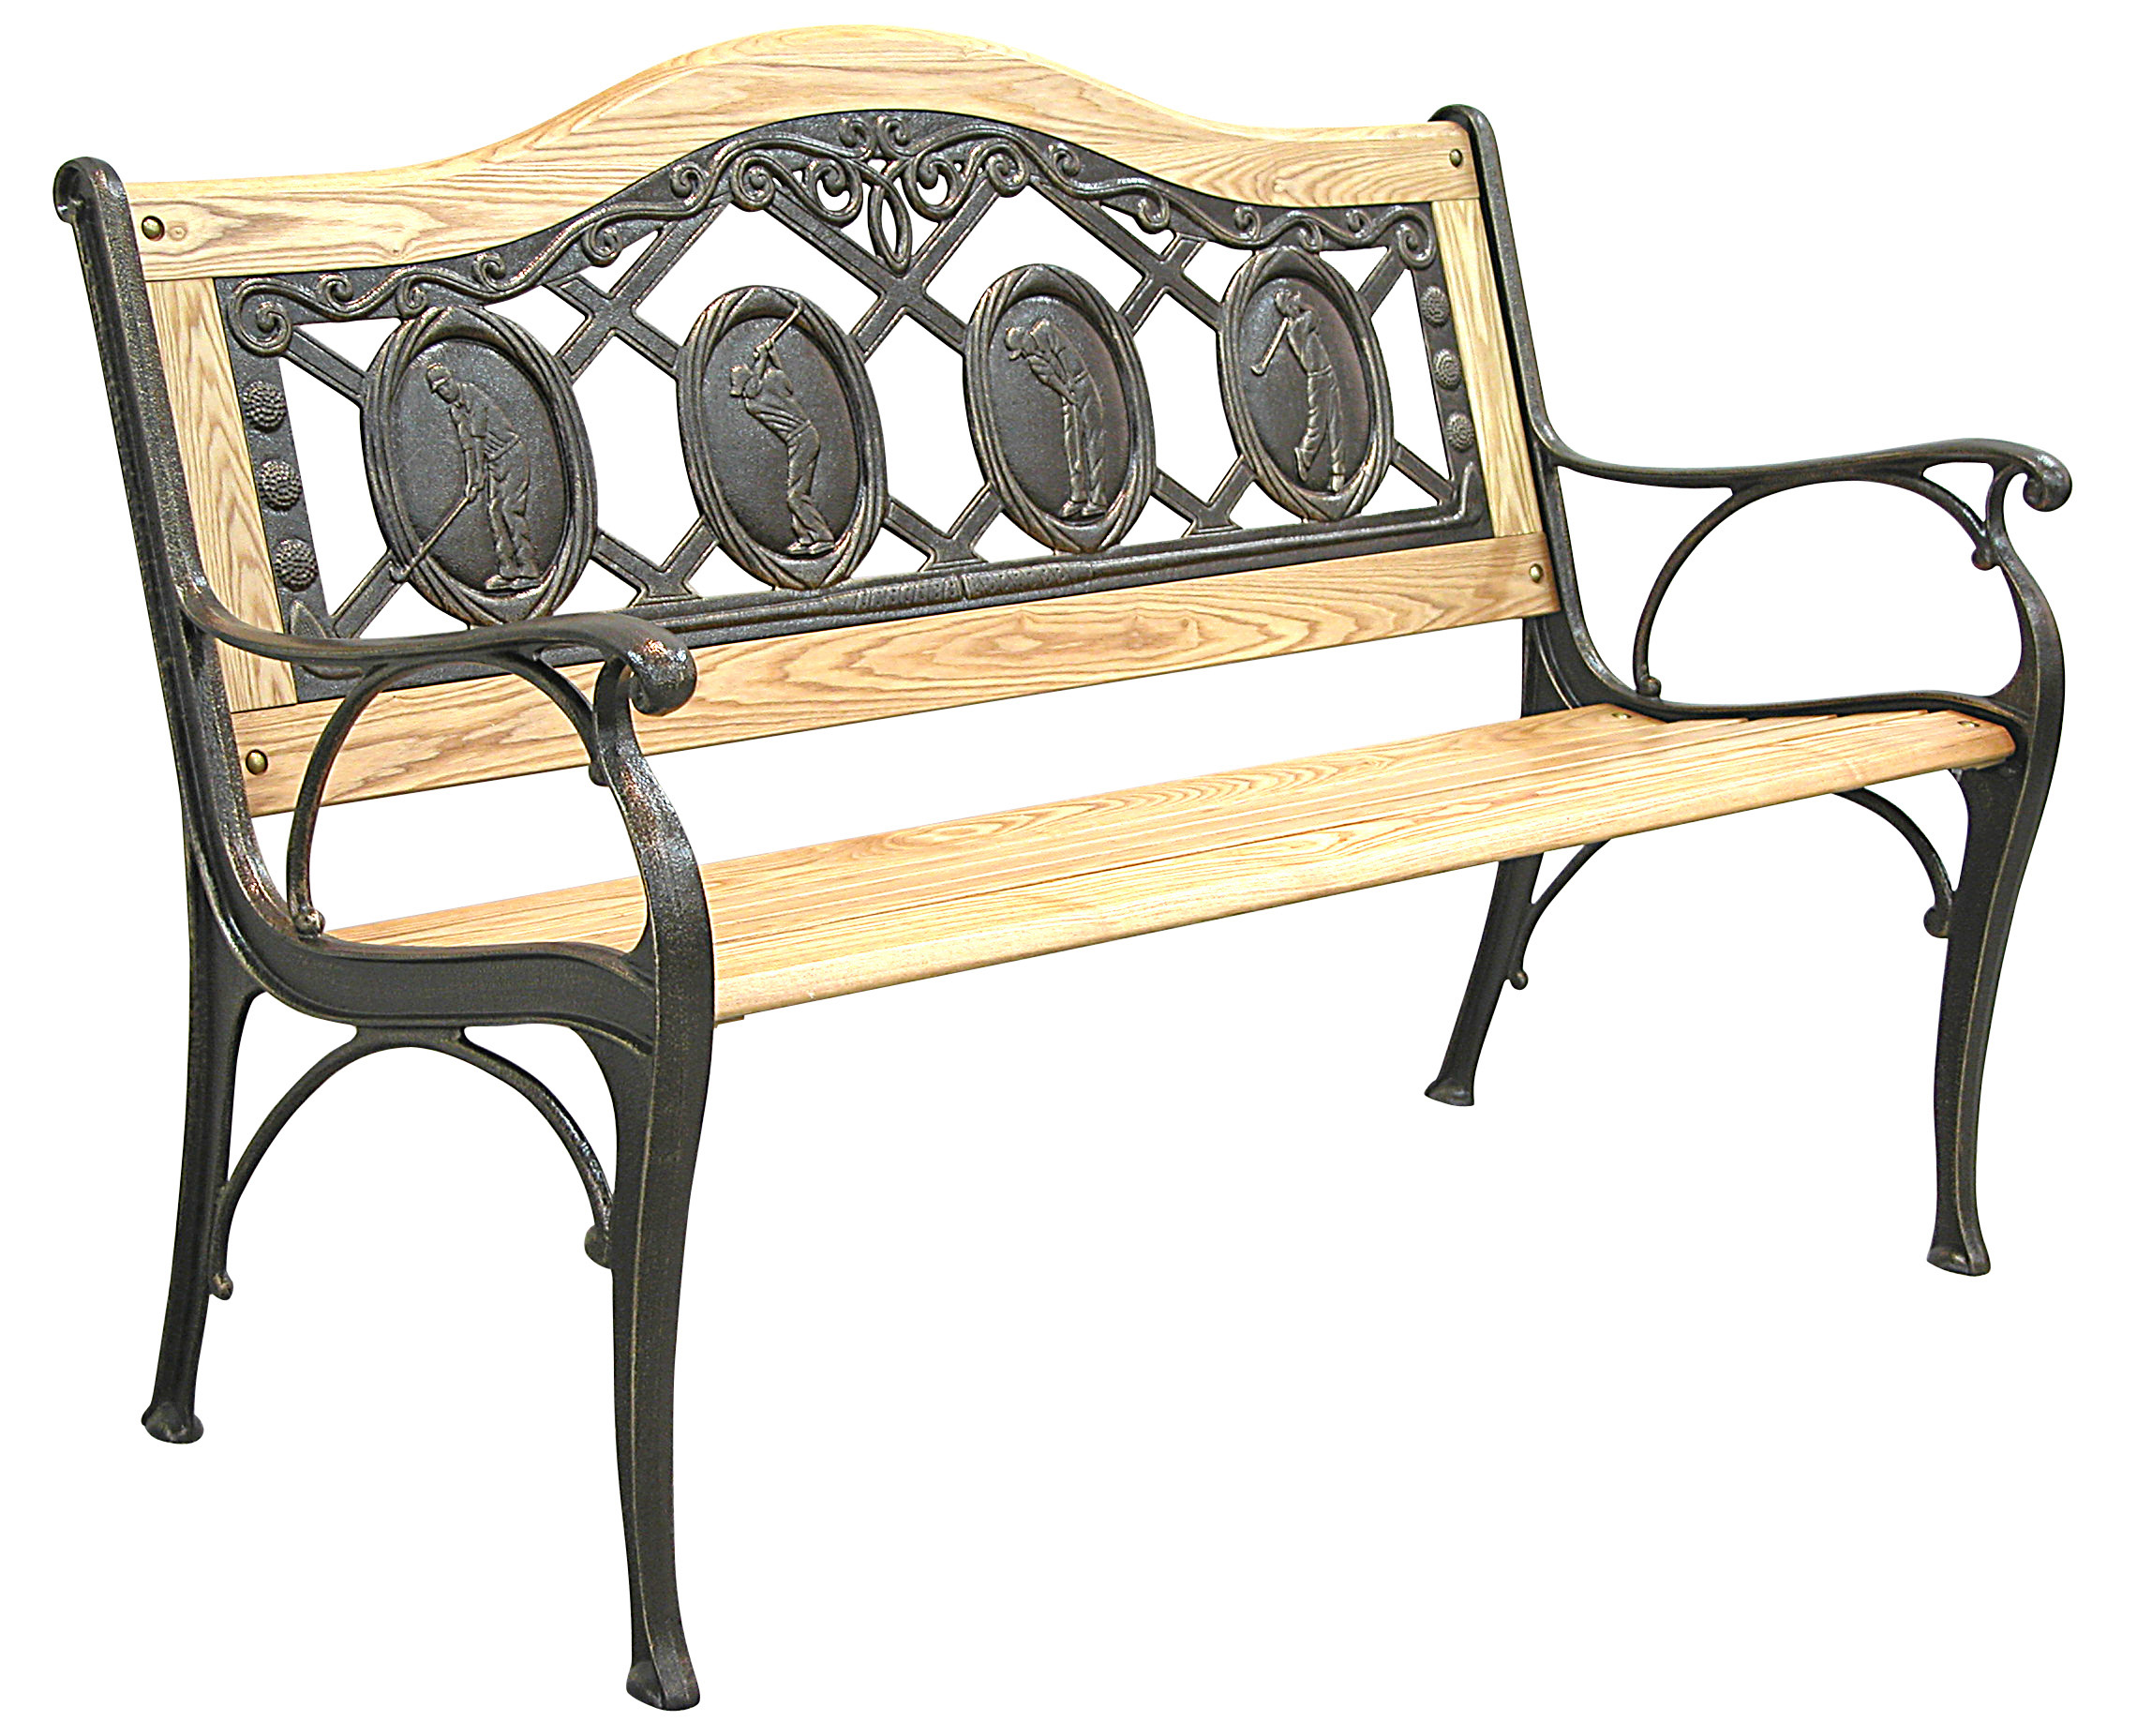 Patio furniture bench traditional cast iron golfer for Outdoor furniture bench